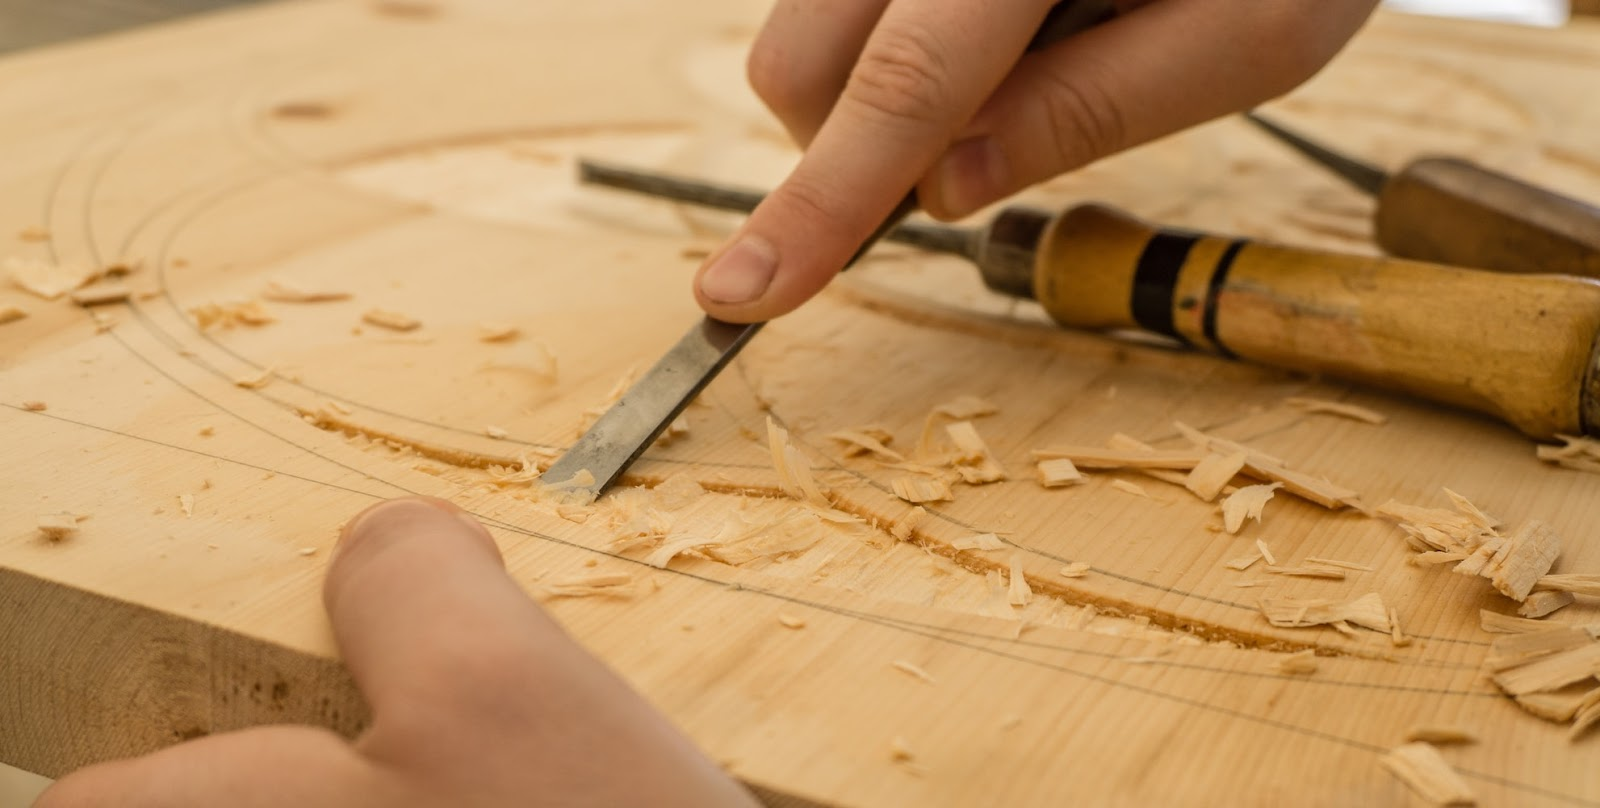 Carpenter carving shapes into wood